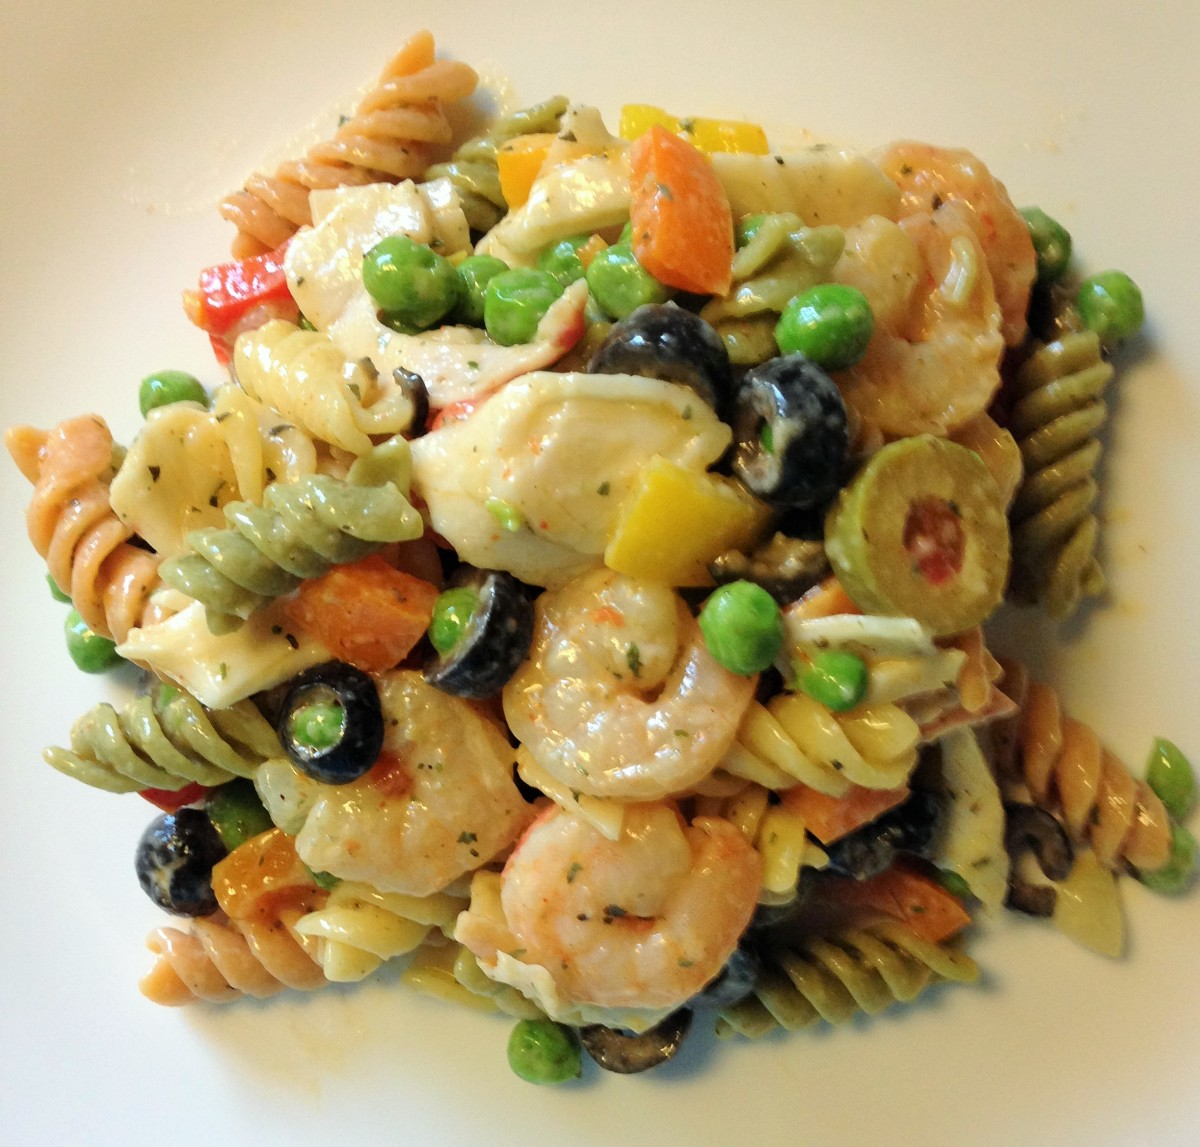 Optional Seafood Pasta Salad is an easy main dish to throw together.